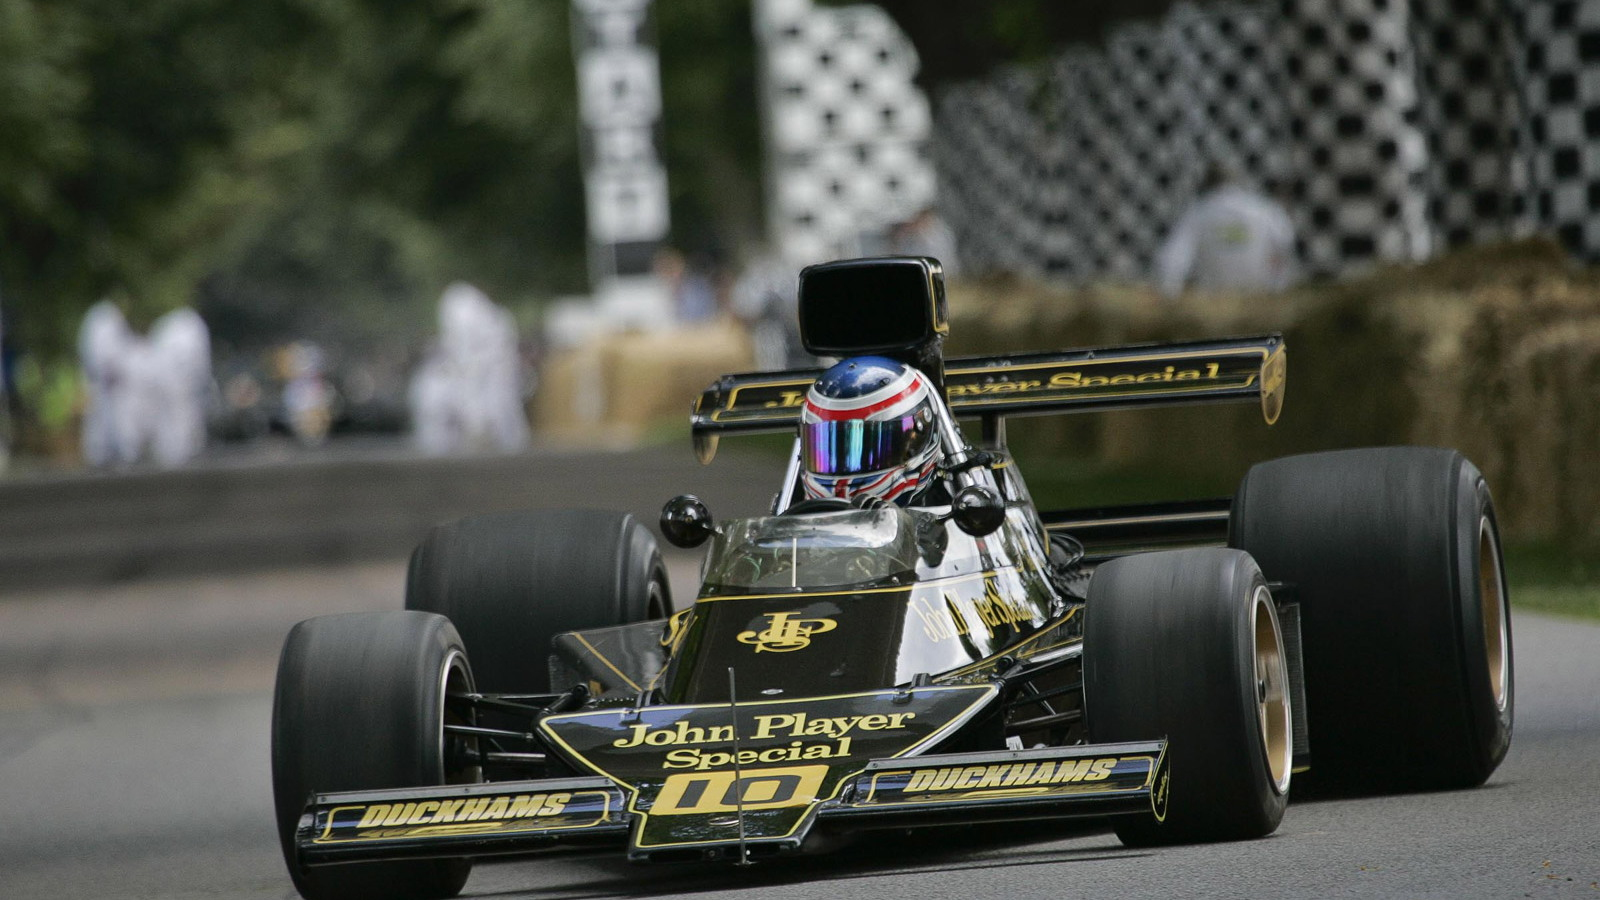 Lotus at previous Goodwood Festival of Speed events